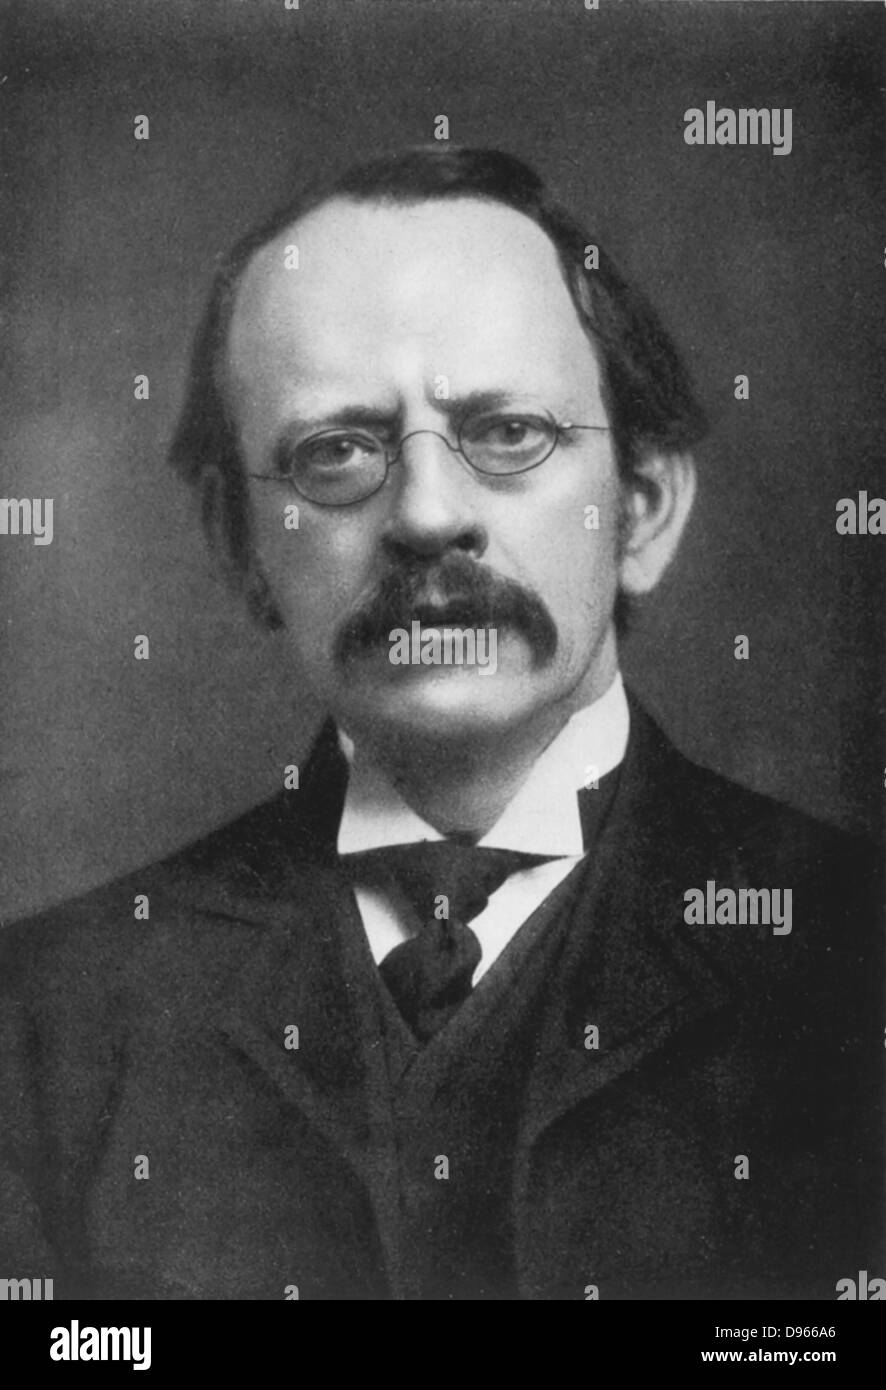 JJ (Joseph John) Thomson (1856-1940) British physicist: discoverer of Electron and pioneer of nuclear physics. From - Stock Image